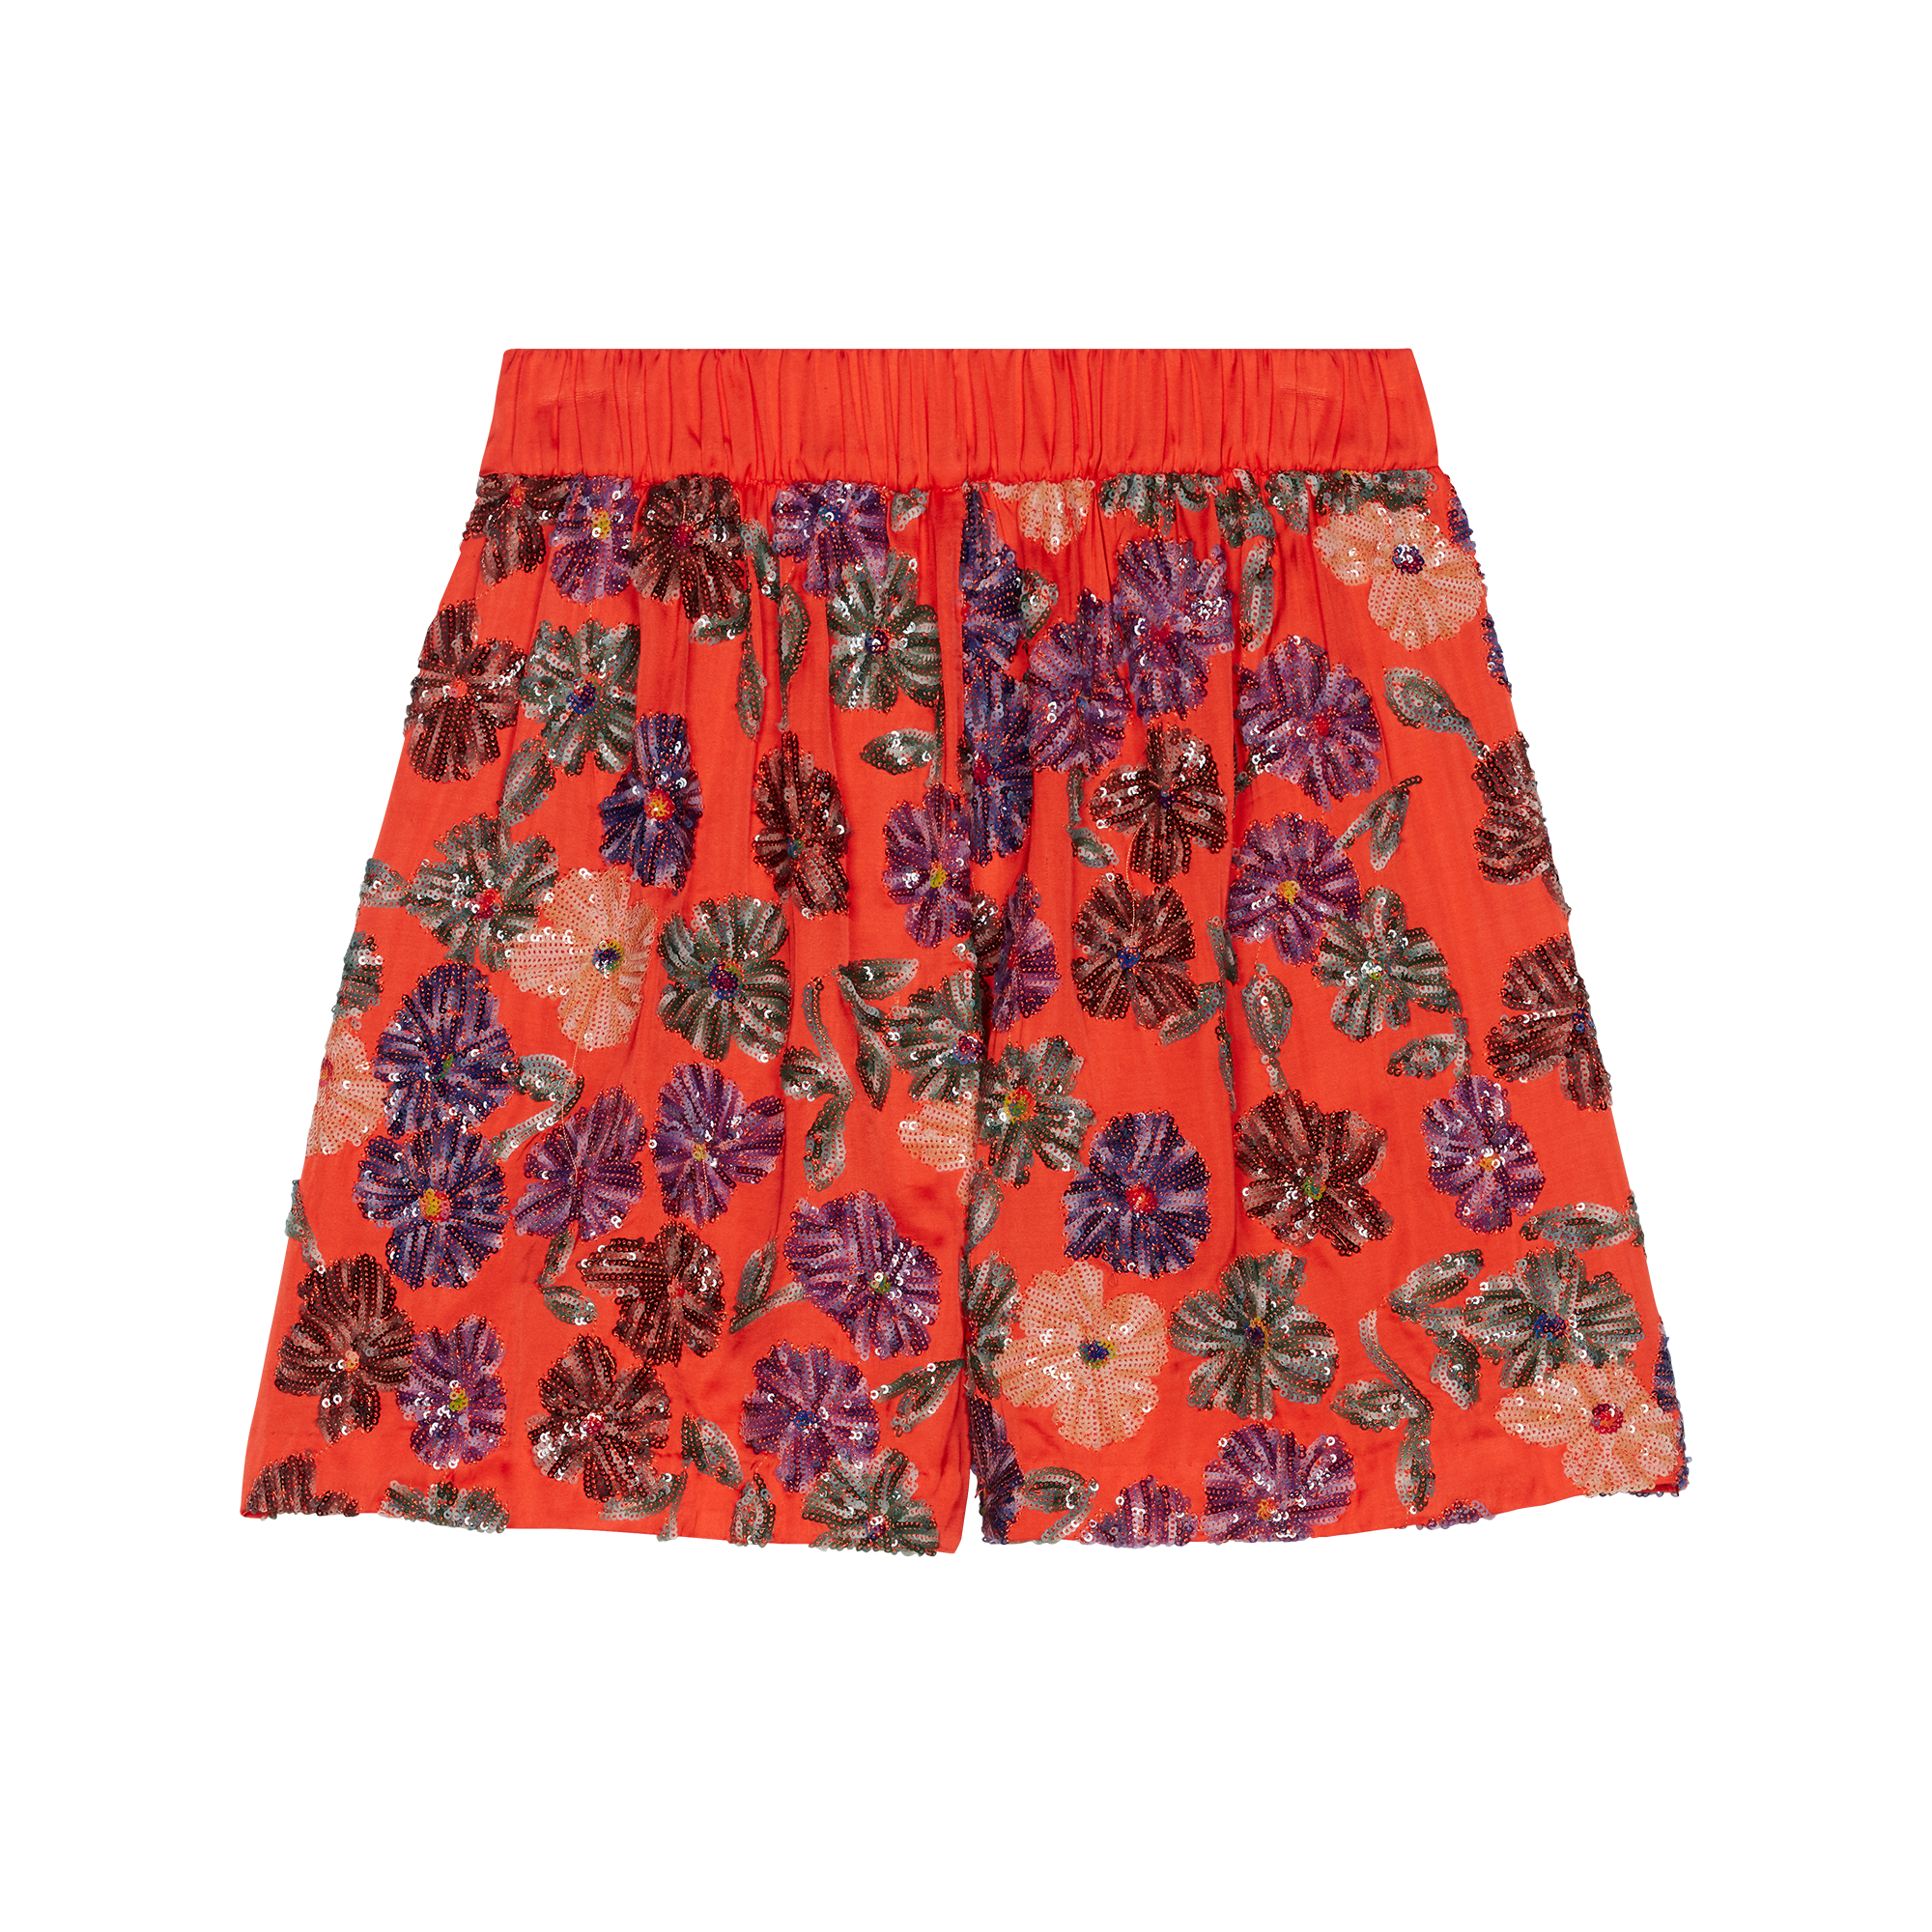 Shorts with sequin embroidery - Skirts & Shorts - MAJE